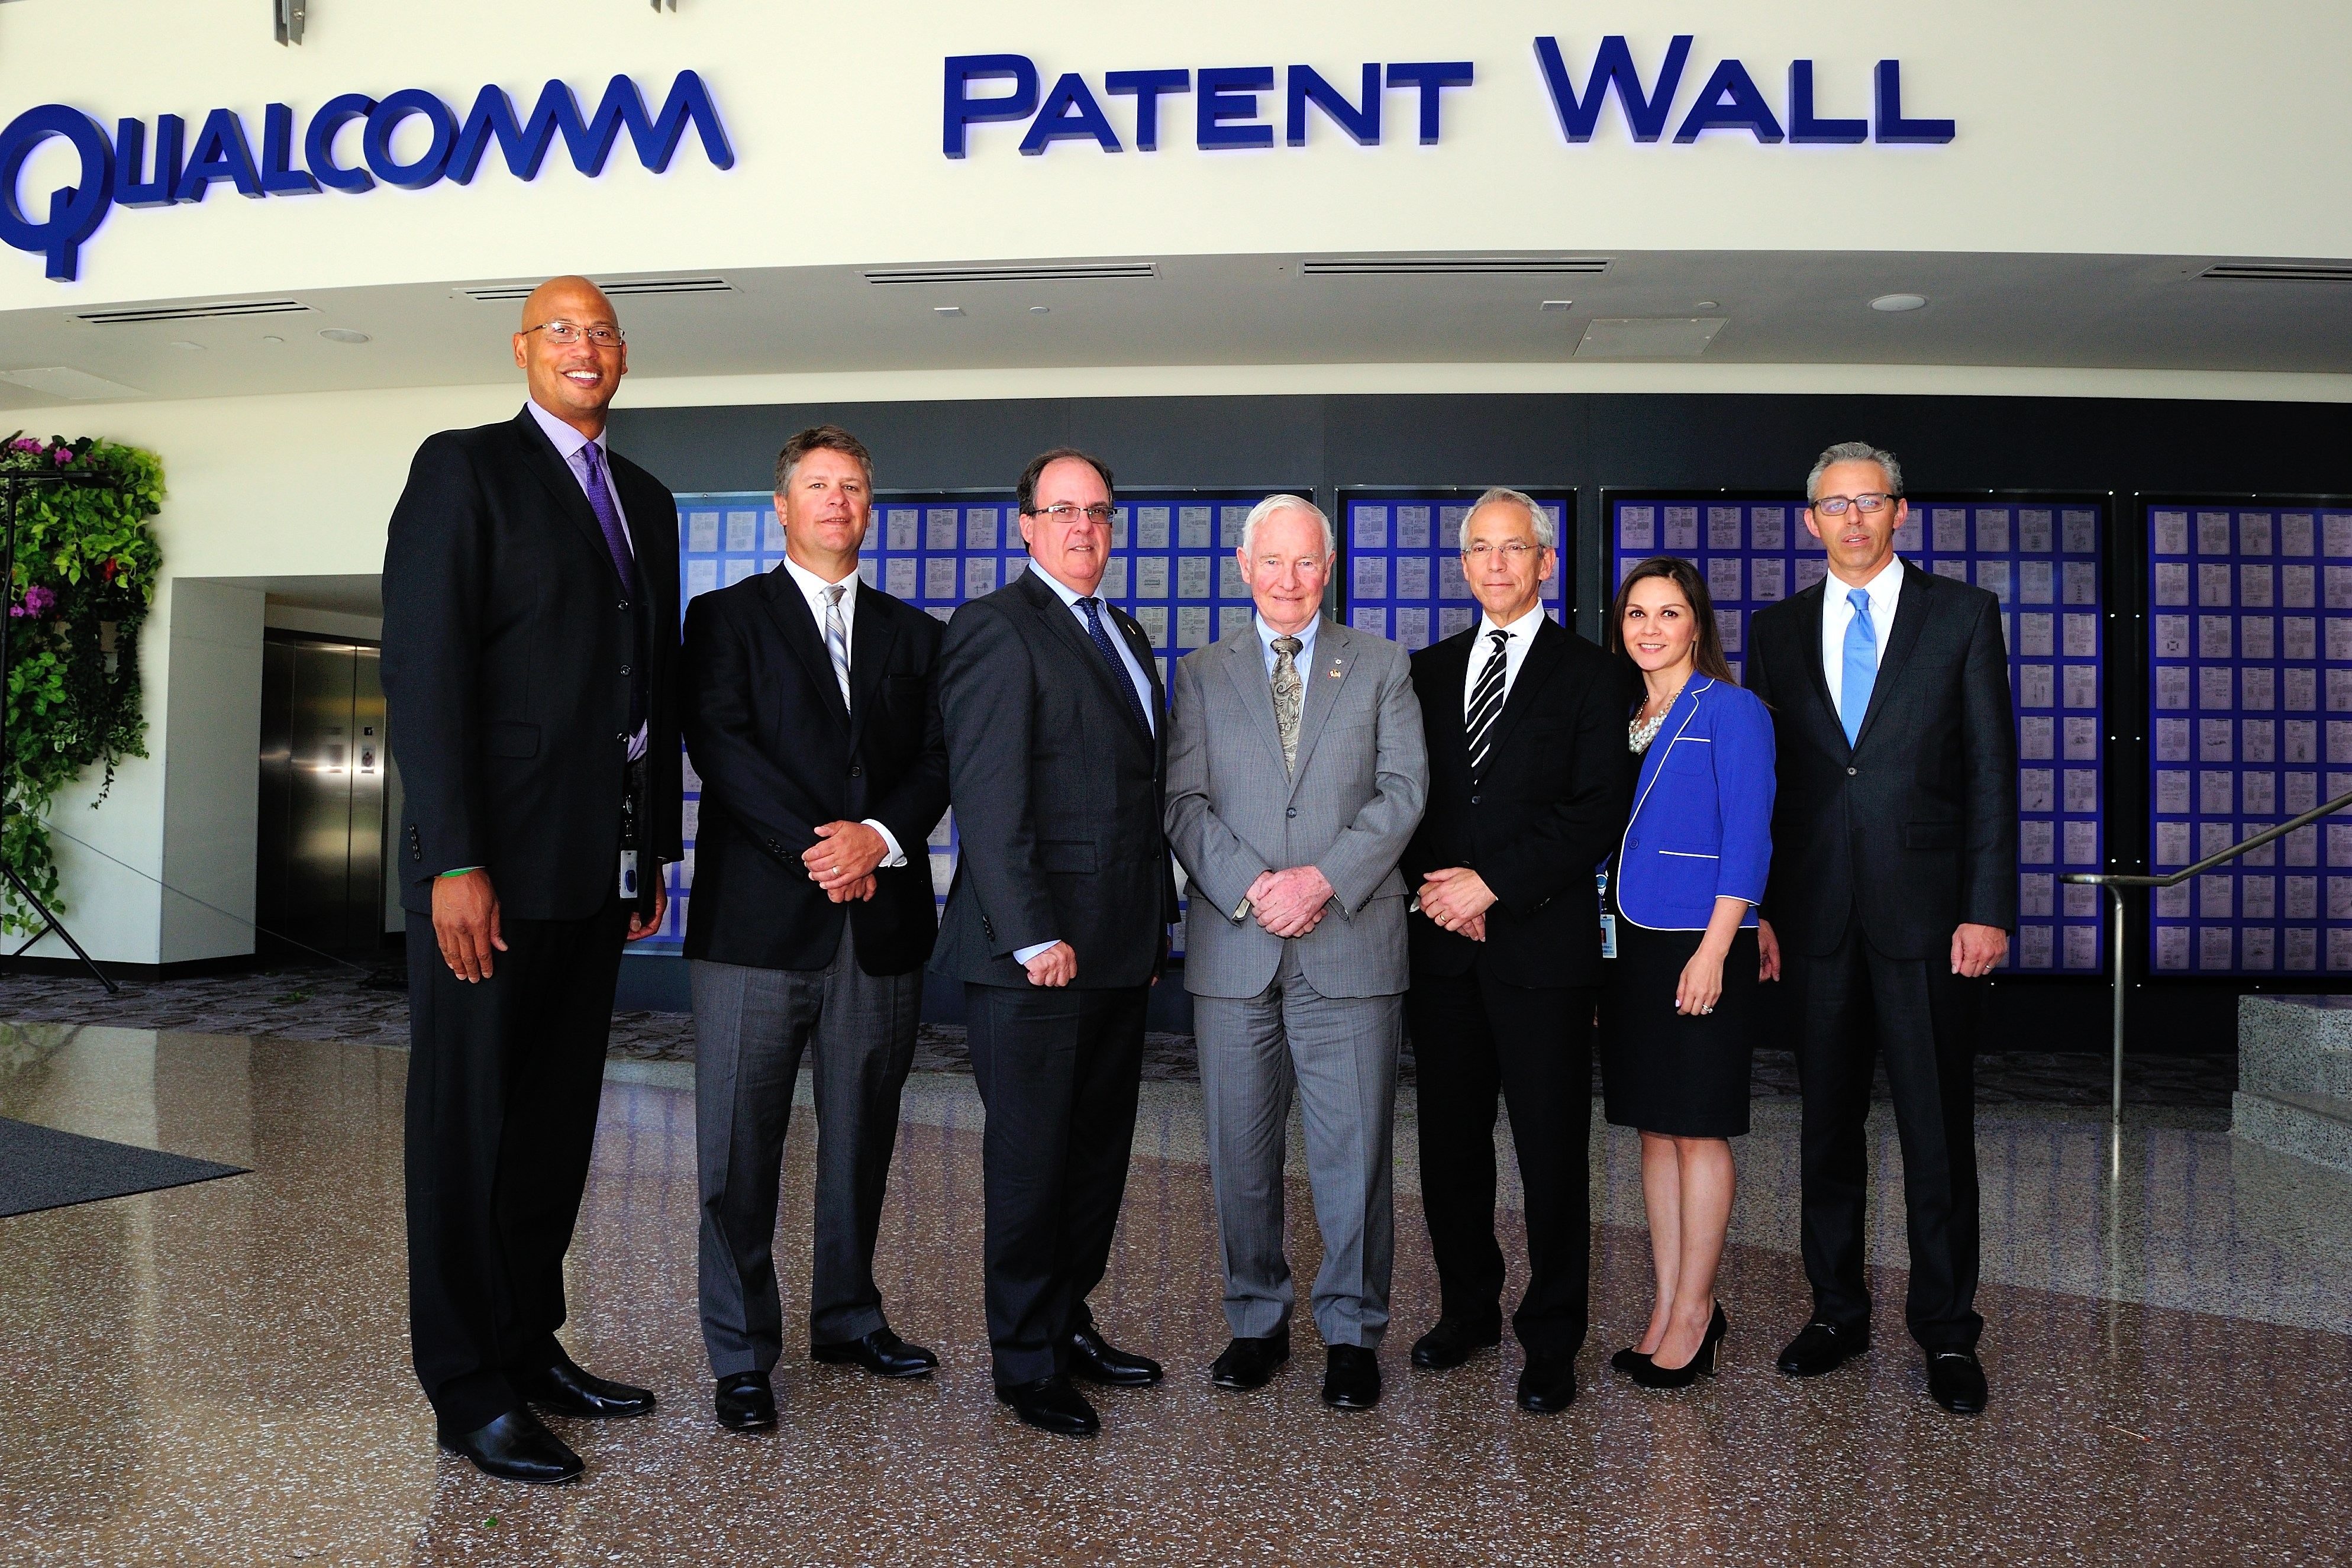 Official photo of the Governor General with executives from Qualcomm in front of their patent wall. Since its founding in 1985, Qualcomm has become one of the principal drivers of San Diego's high-technology economy, spurring numerous start-up companies and attracting other major players in the industry to San Diego. Qualcomm is the world's leading mobile chipset provider and employs 21 000 workers worldwide.